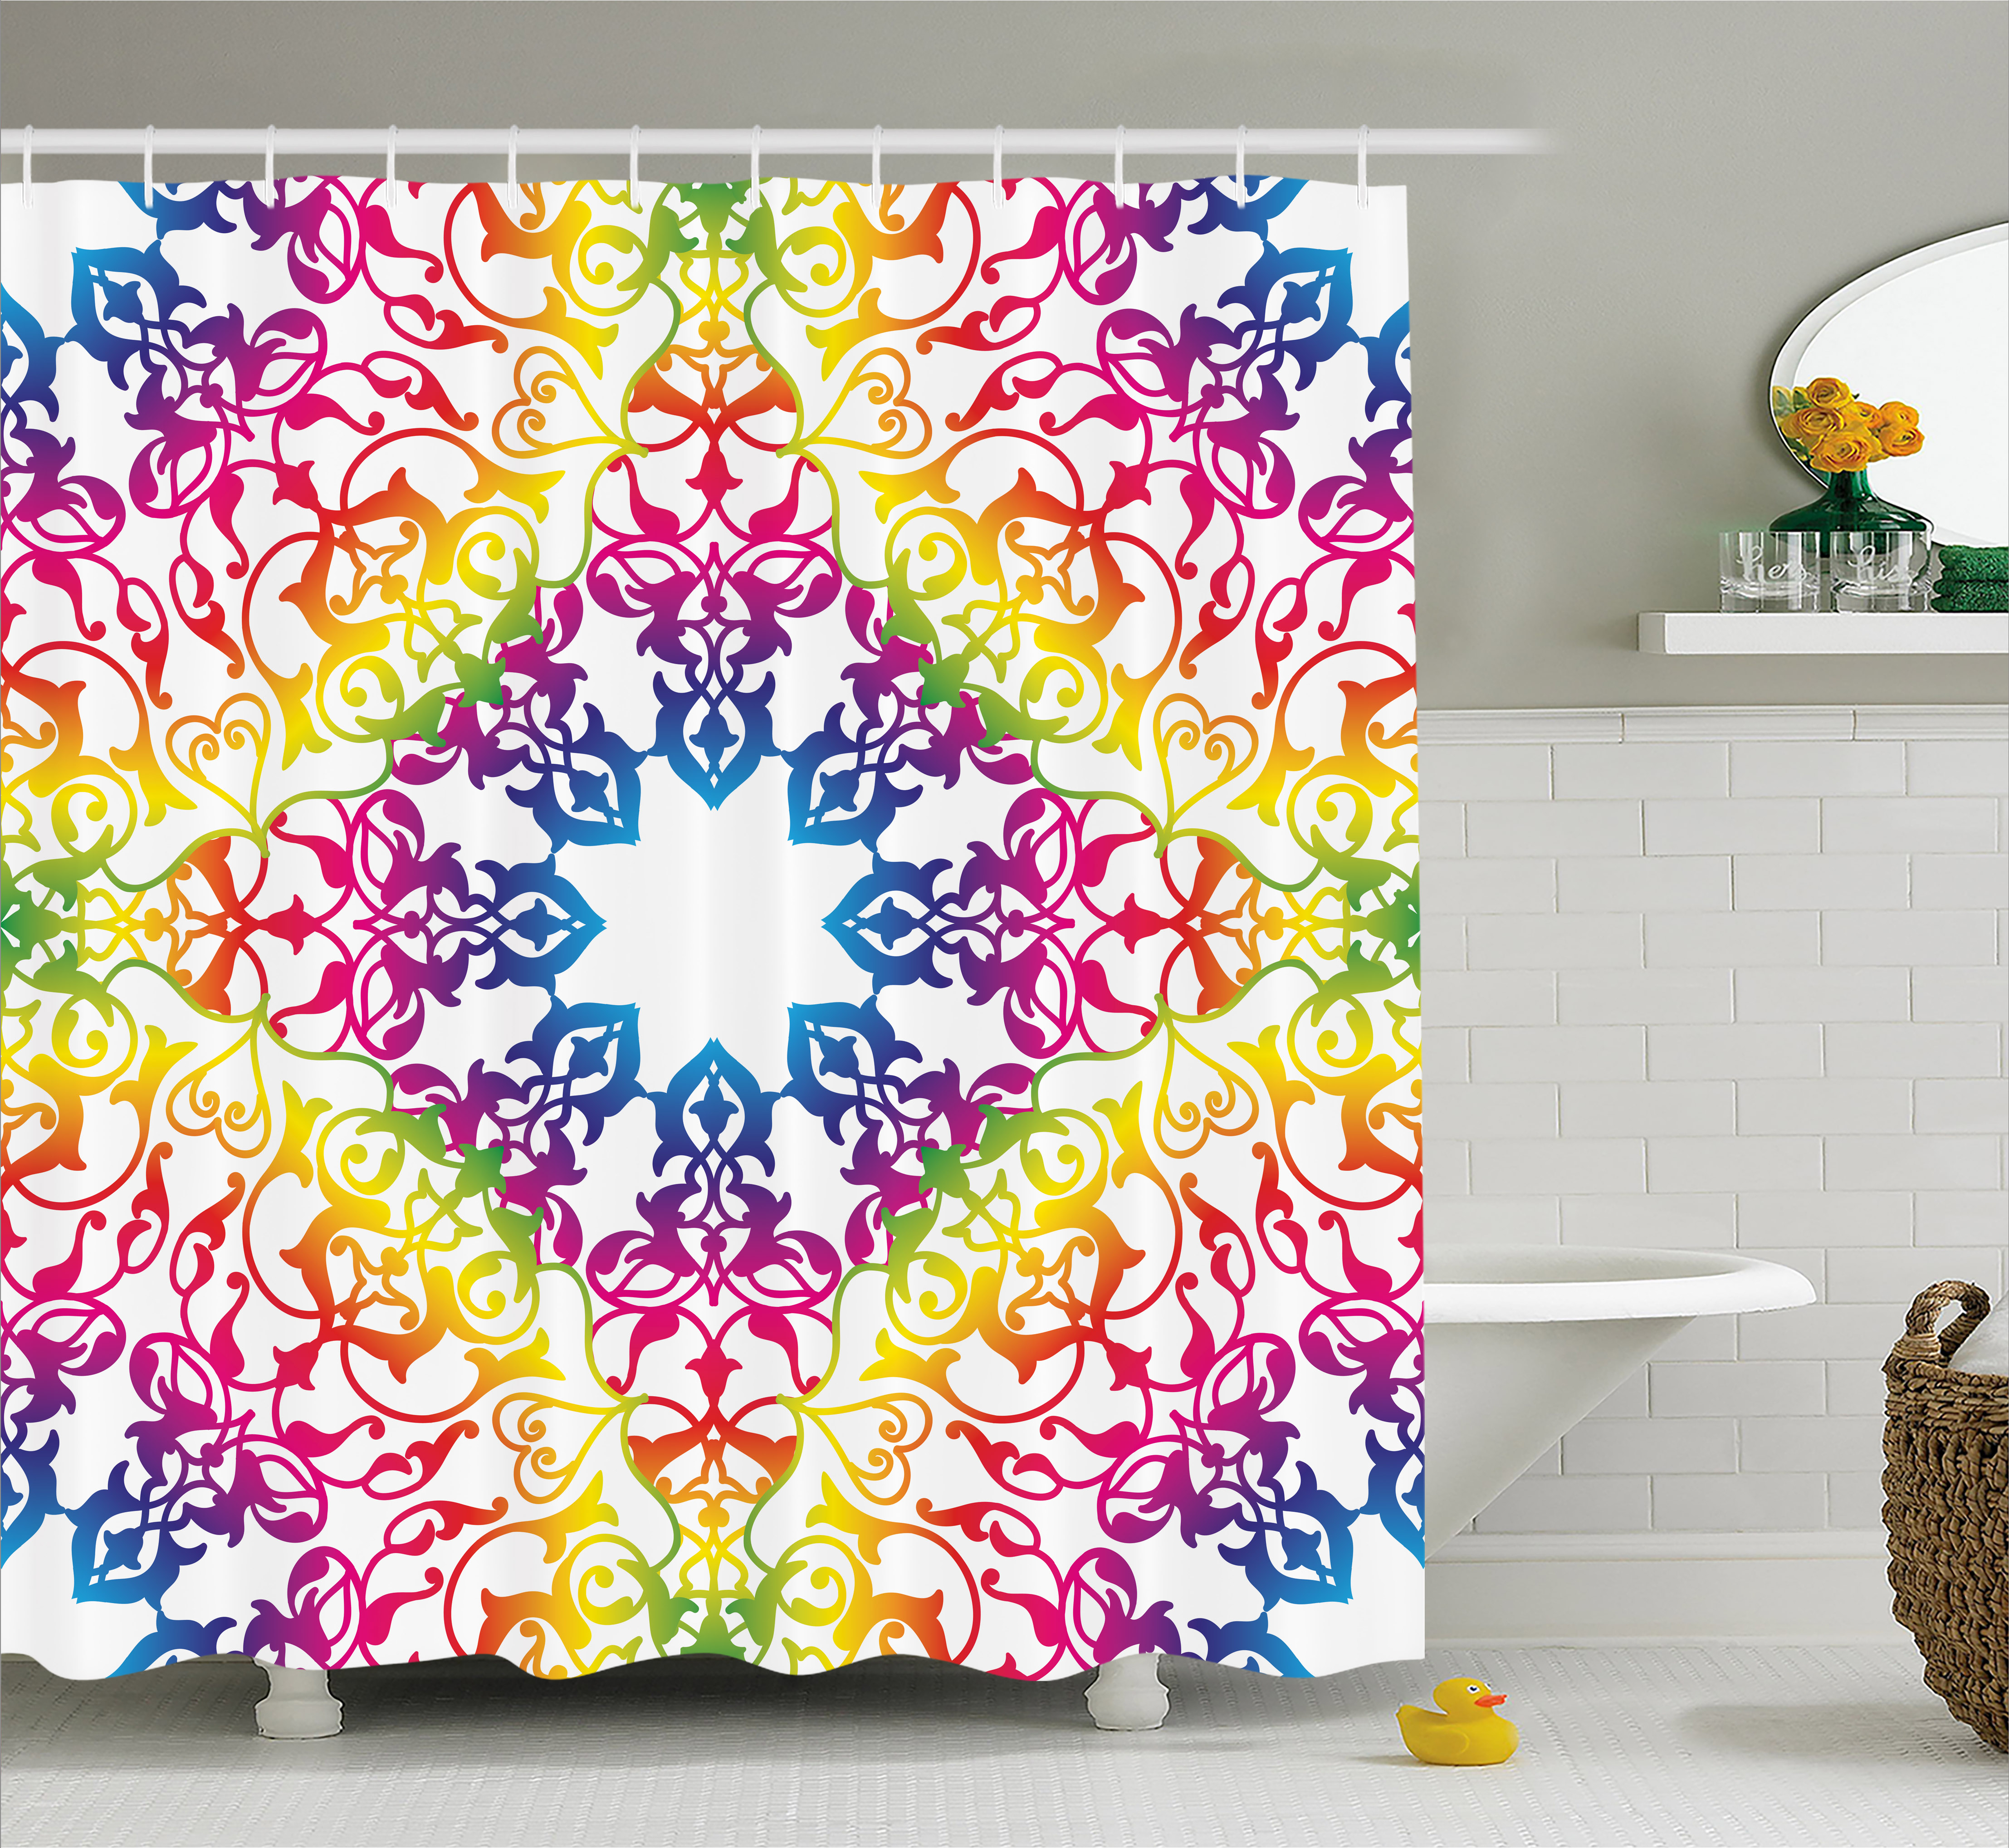 India Shower Curtain, Abstract Ombre Vivid Rainbow Colored Lace Mandala Tie  Dye Flower Kids Hippie Decor, Fabric Bathroom Set With Hooks, 69W X 70L ...